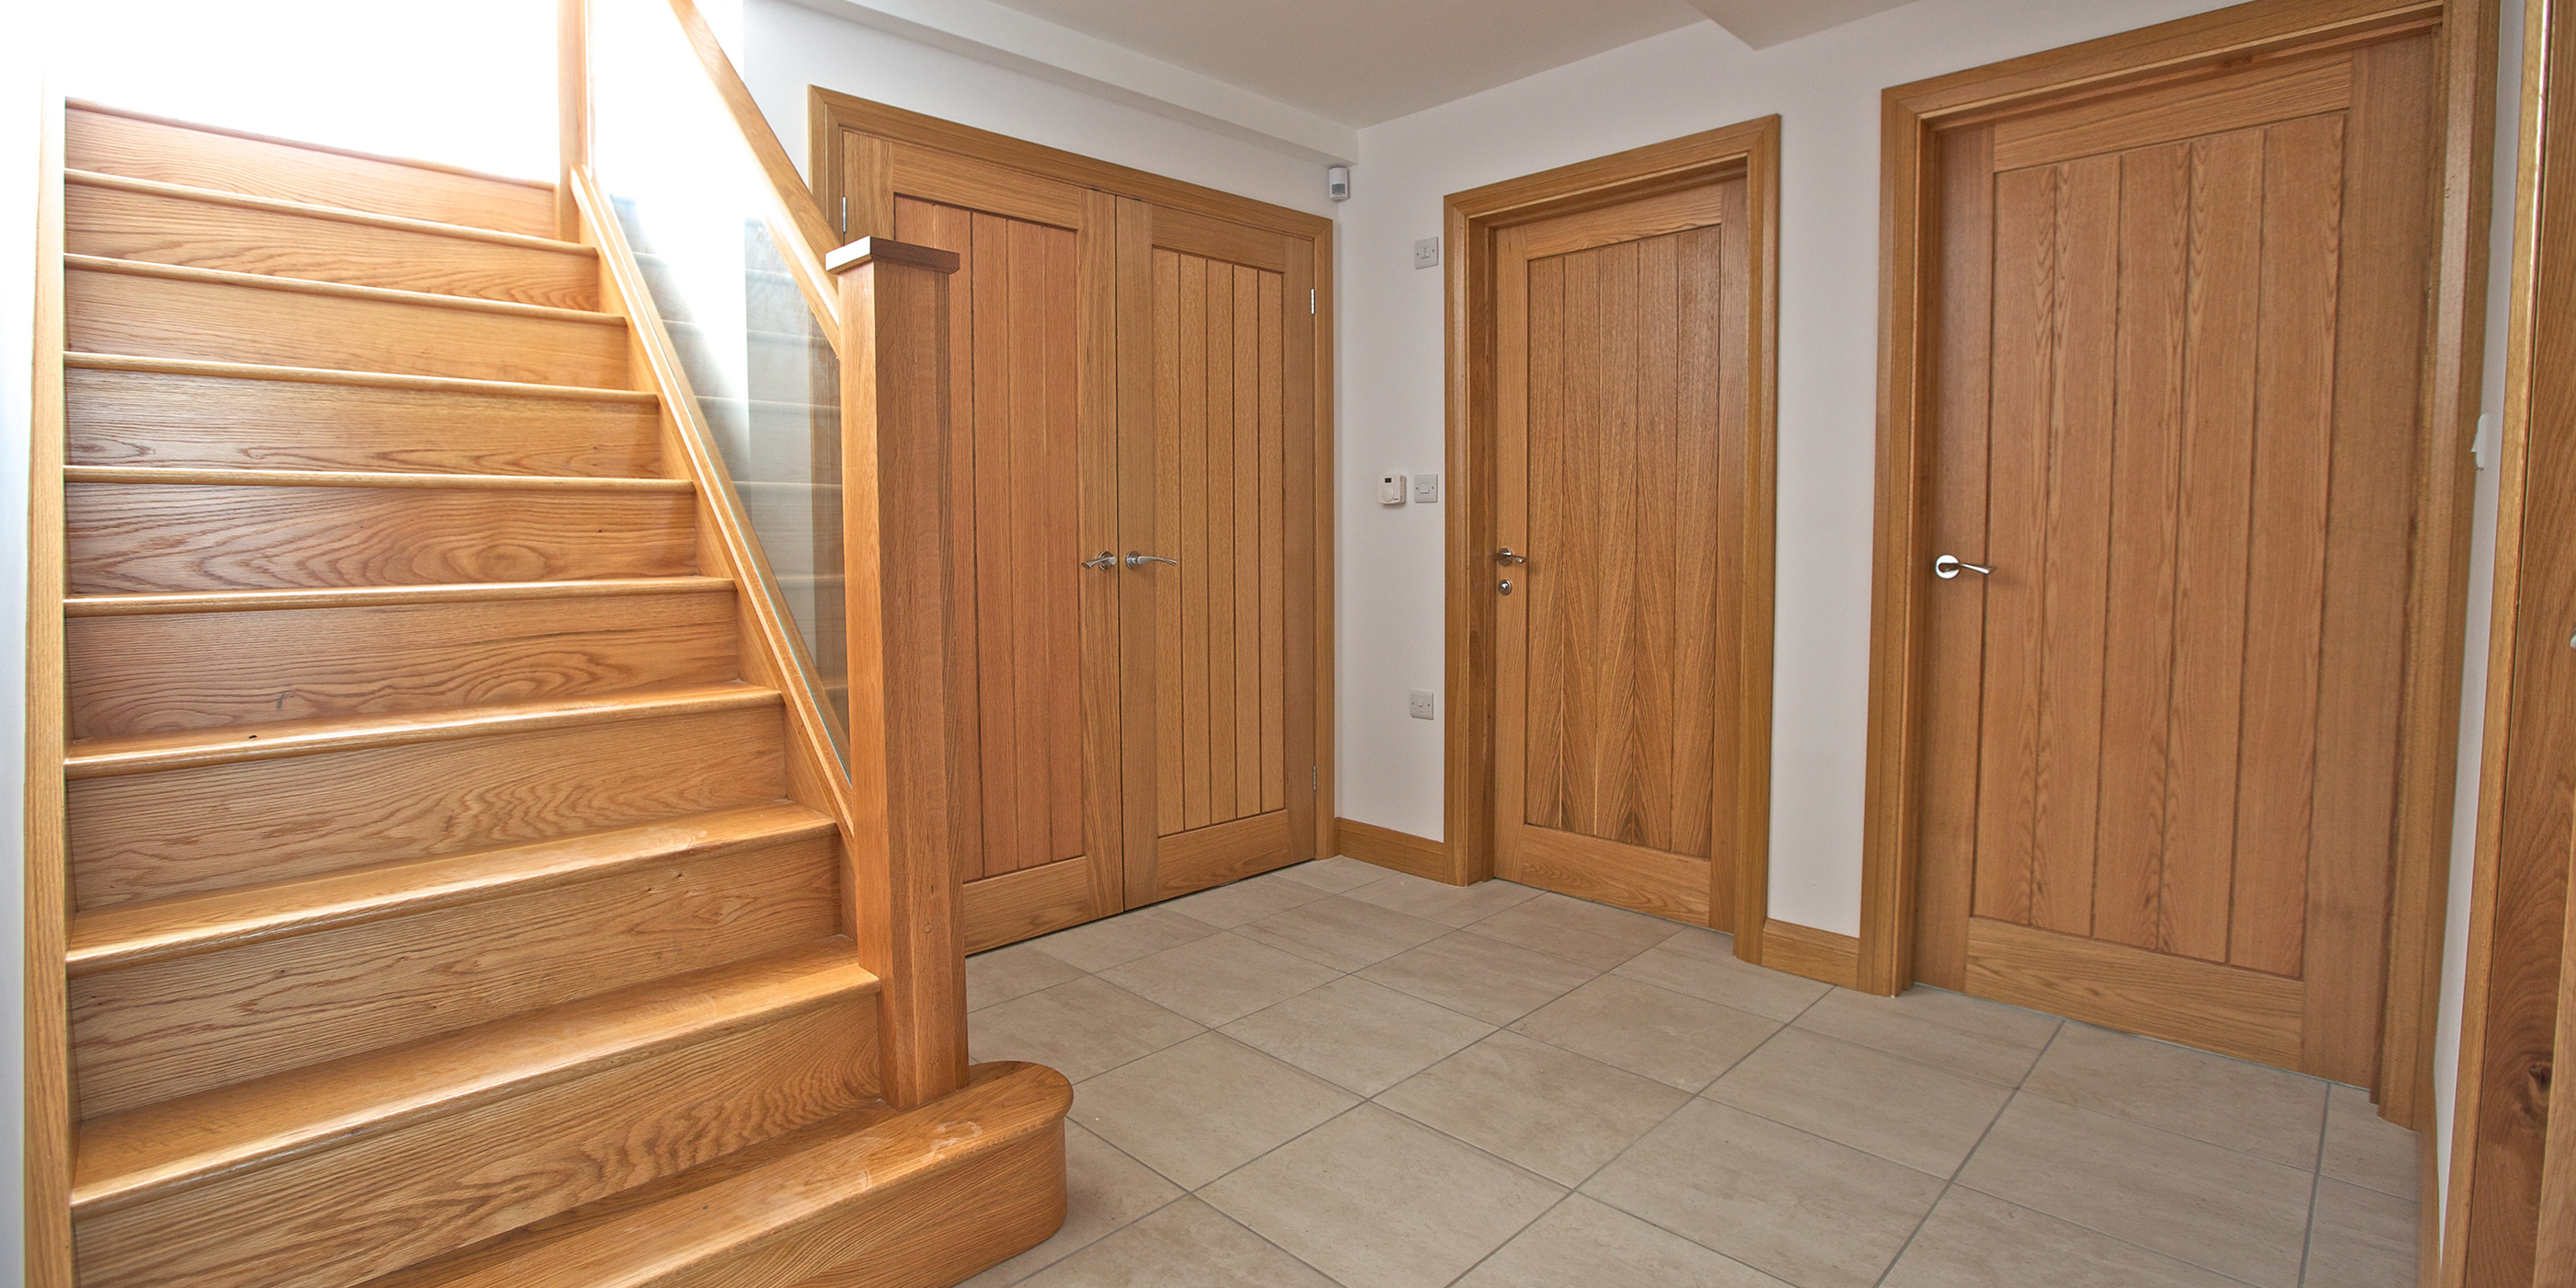 Timberpride Oak Doors and Stairs